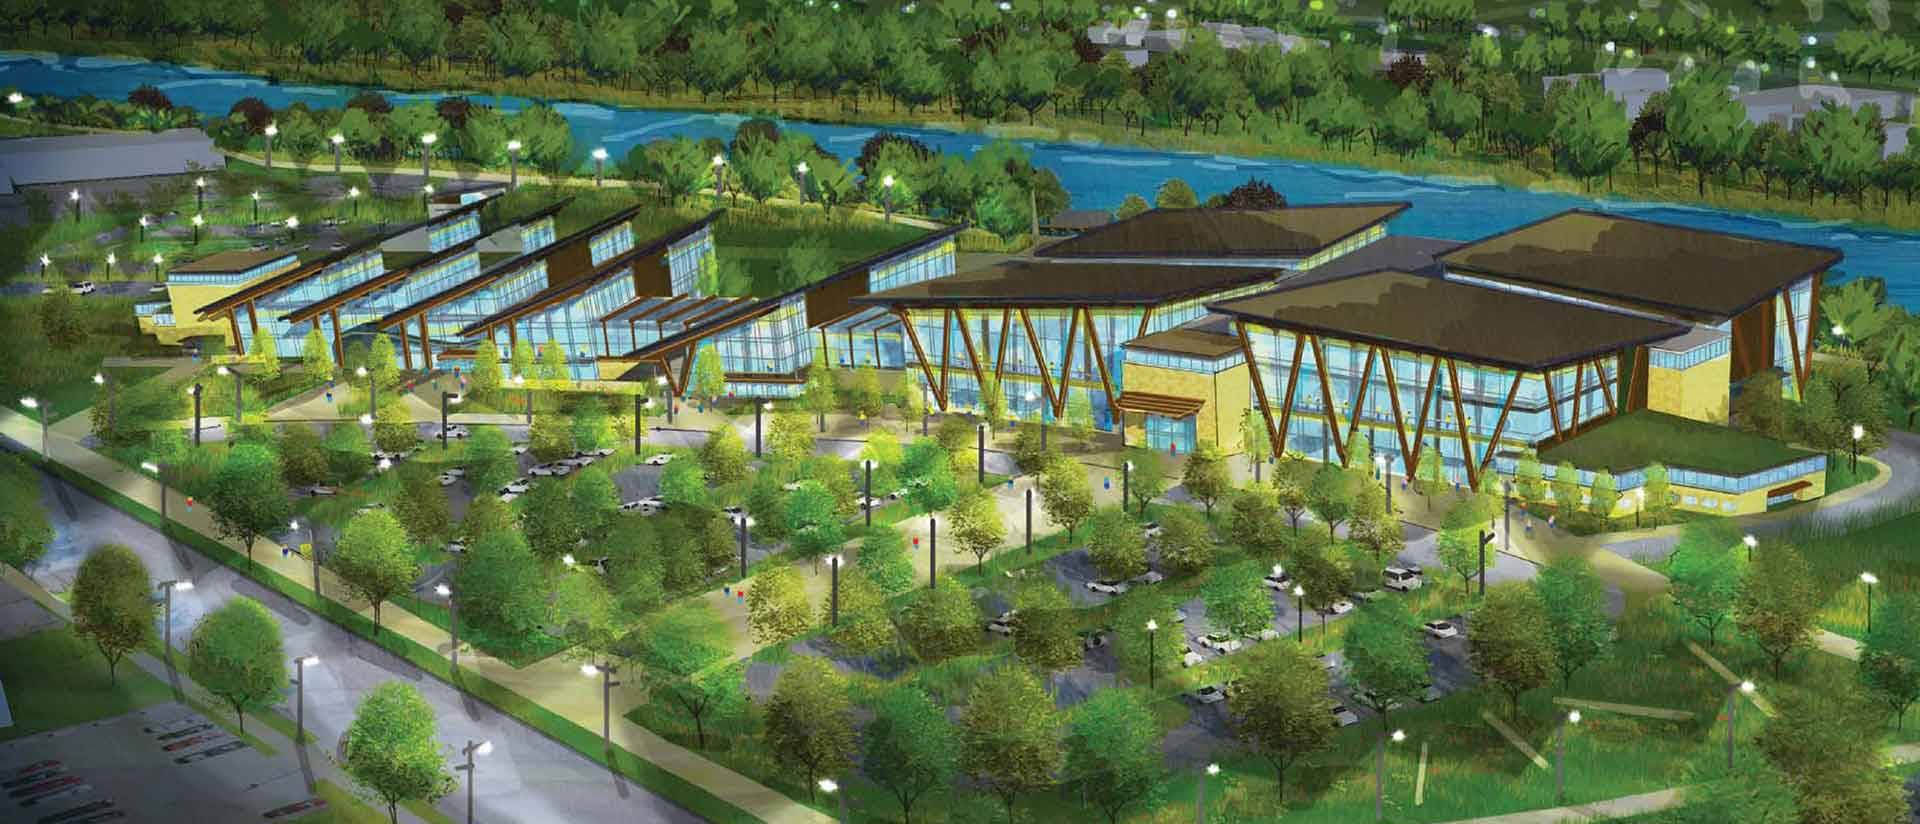 Preliminary design concept for Sonnentag Event and Recreation Complex